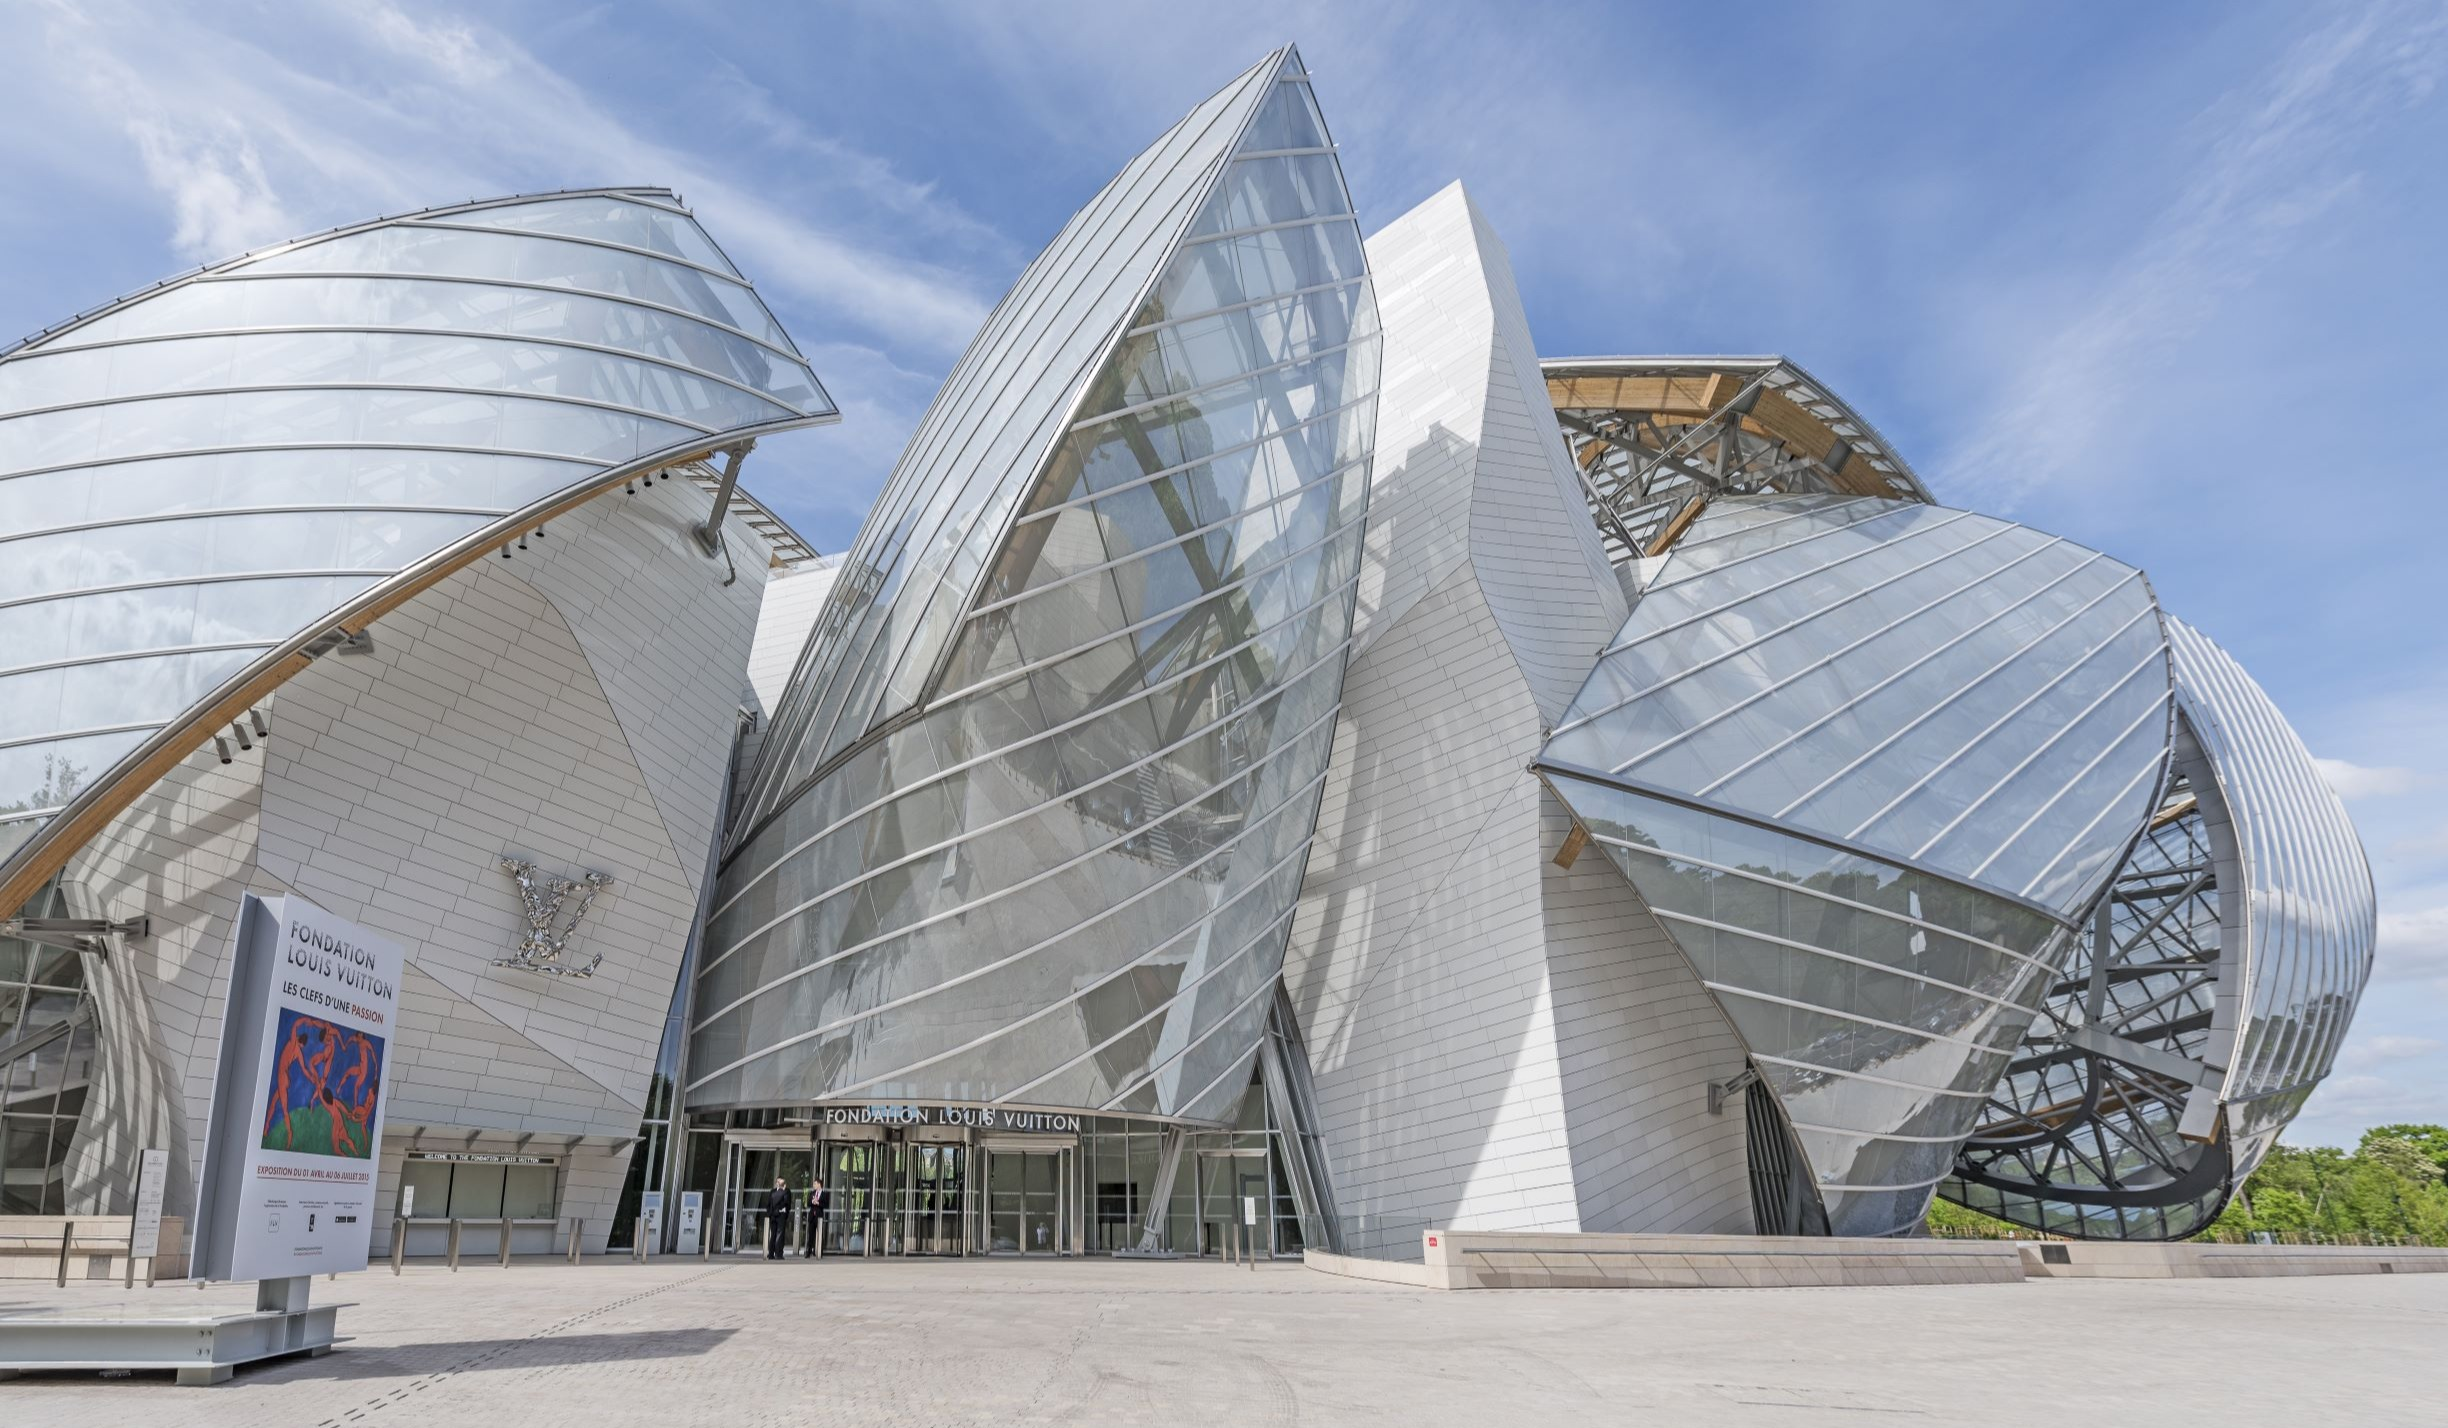 French Limestone & Sustainability Set the Stage for Louis Vuitton Foundation